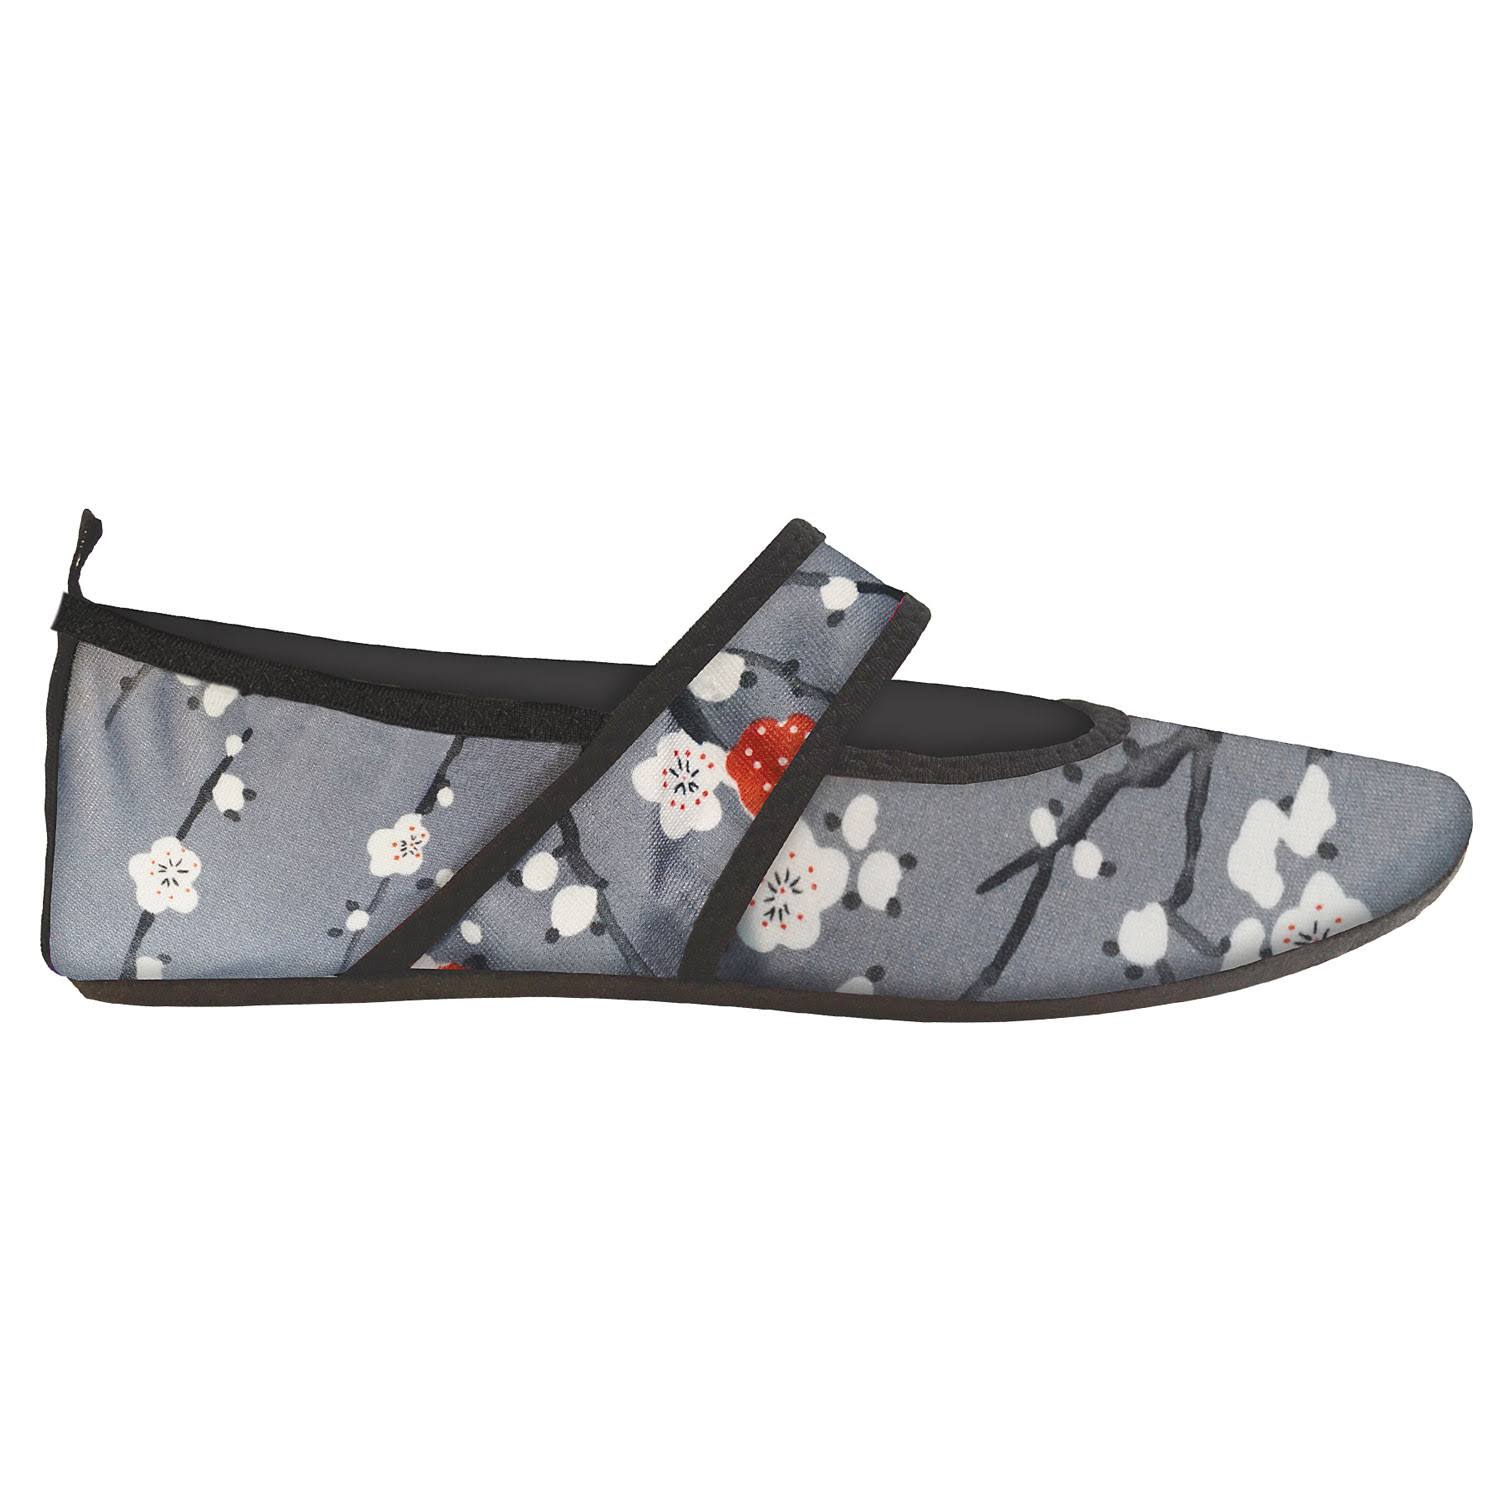 Women's Nufoot Indoor/Outdoor Futsole Neoprene Slippers - Cherry Blossom, Size: Medium, Gray